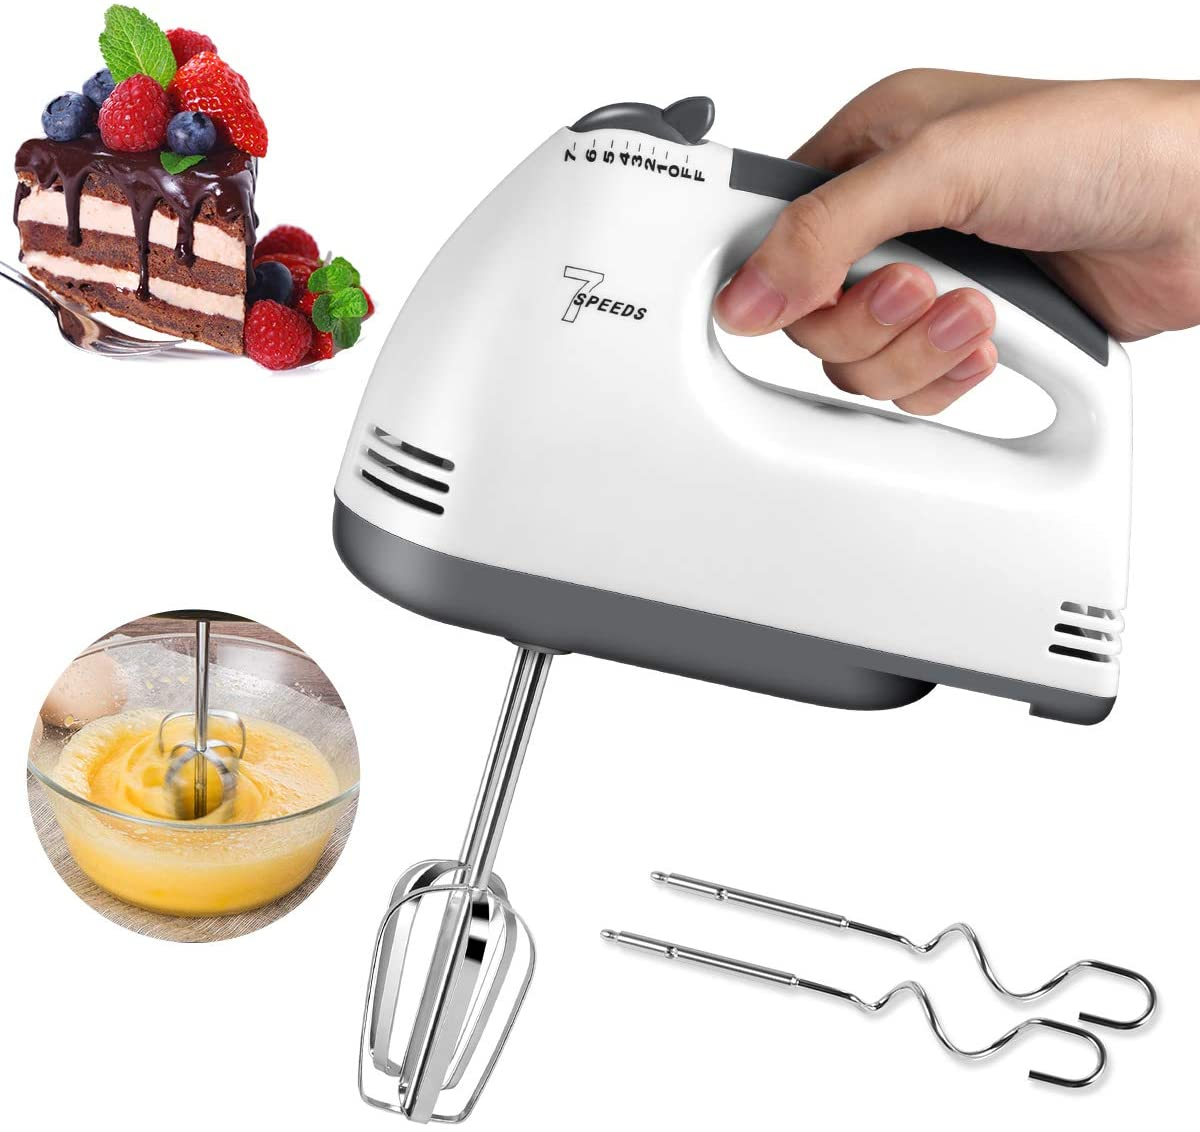 Brownies Cakes 7 Speeds Turbo Handheld Mixer Egg Whisk with 2 Beaters 2 Dough Hooks /& 1 Egg Separator Dough Batters Kitchen Egg Blender for Home Easy Whipping Mixing Cookies Electric Hand Mixer